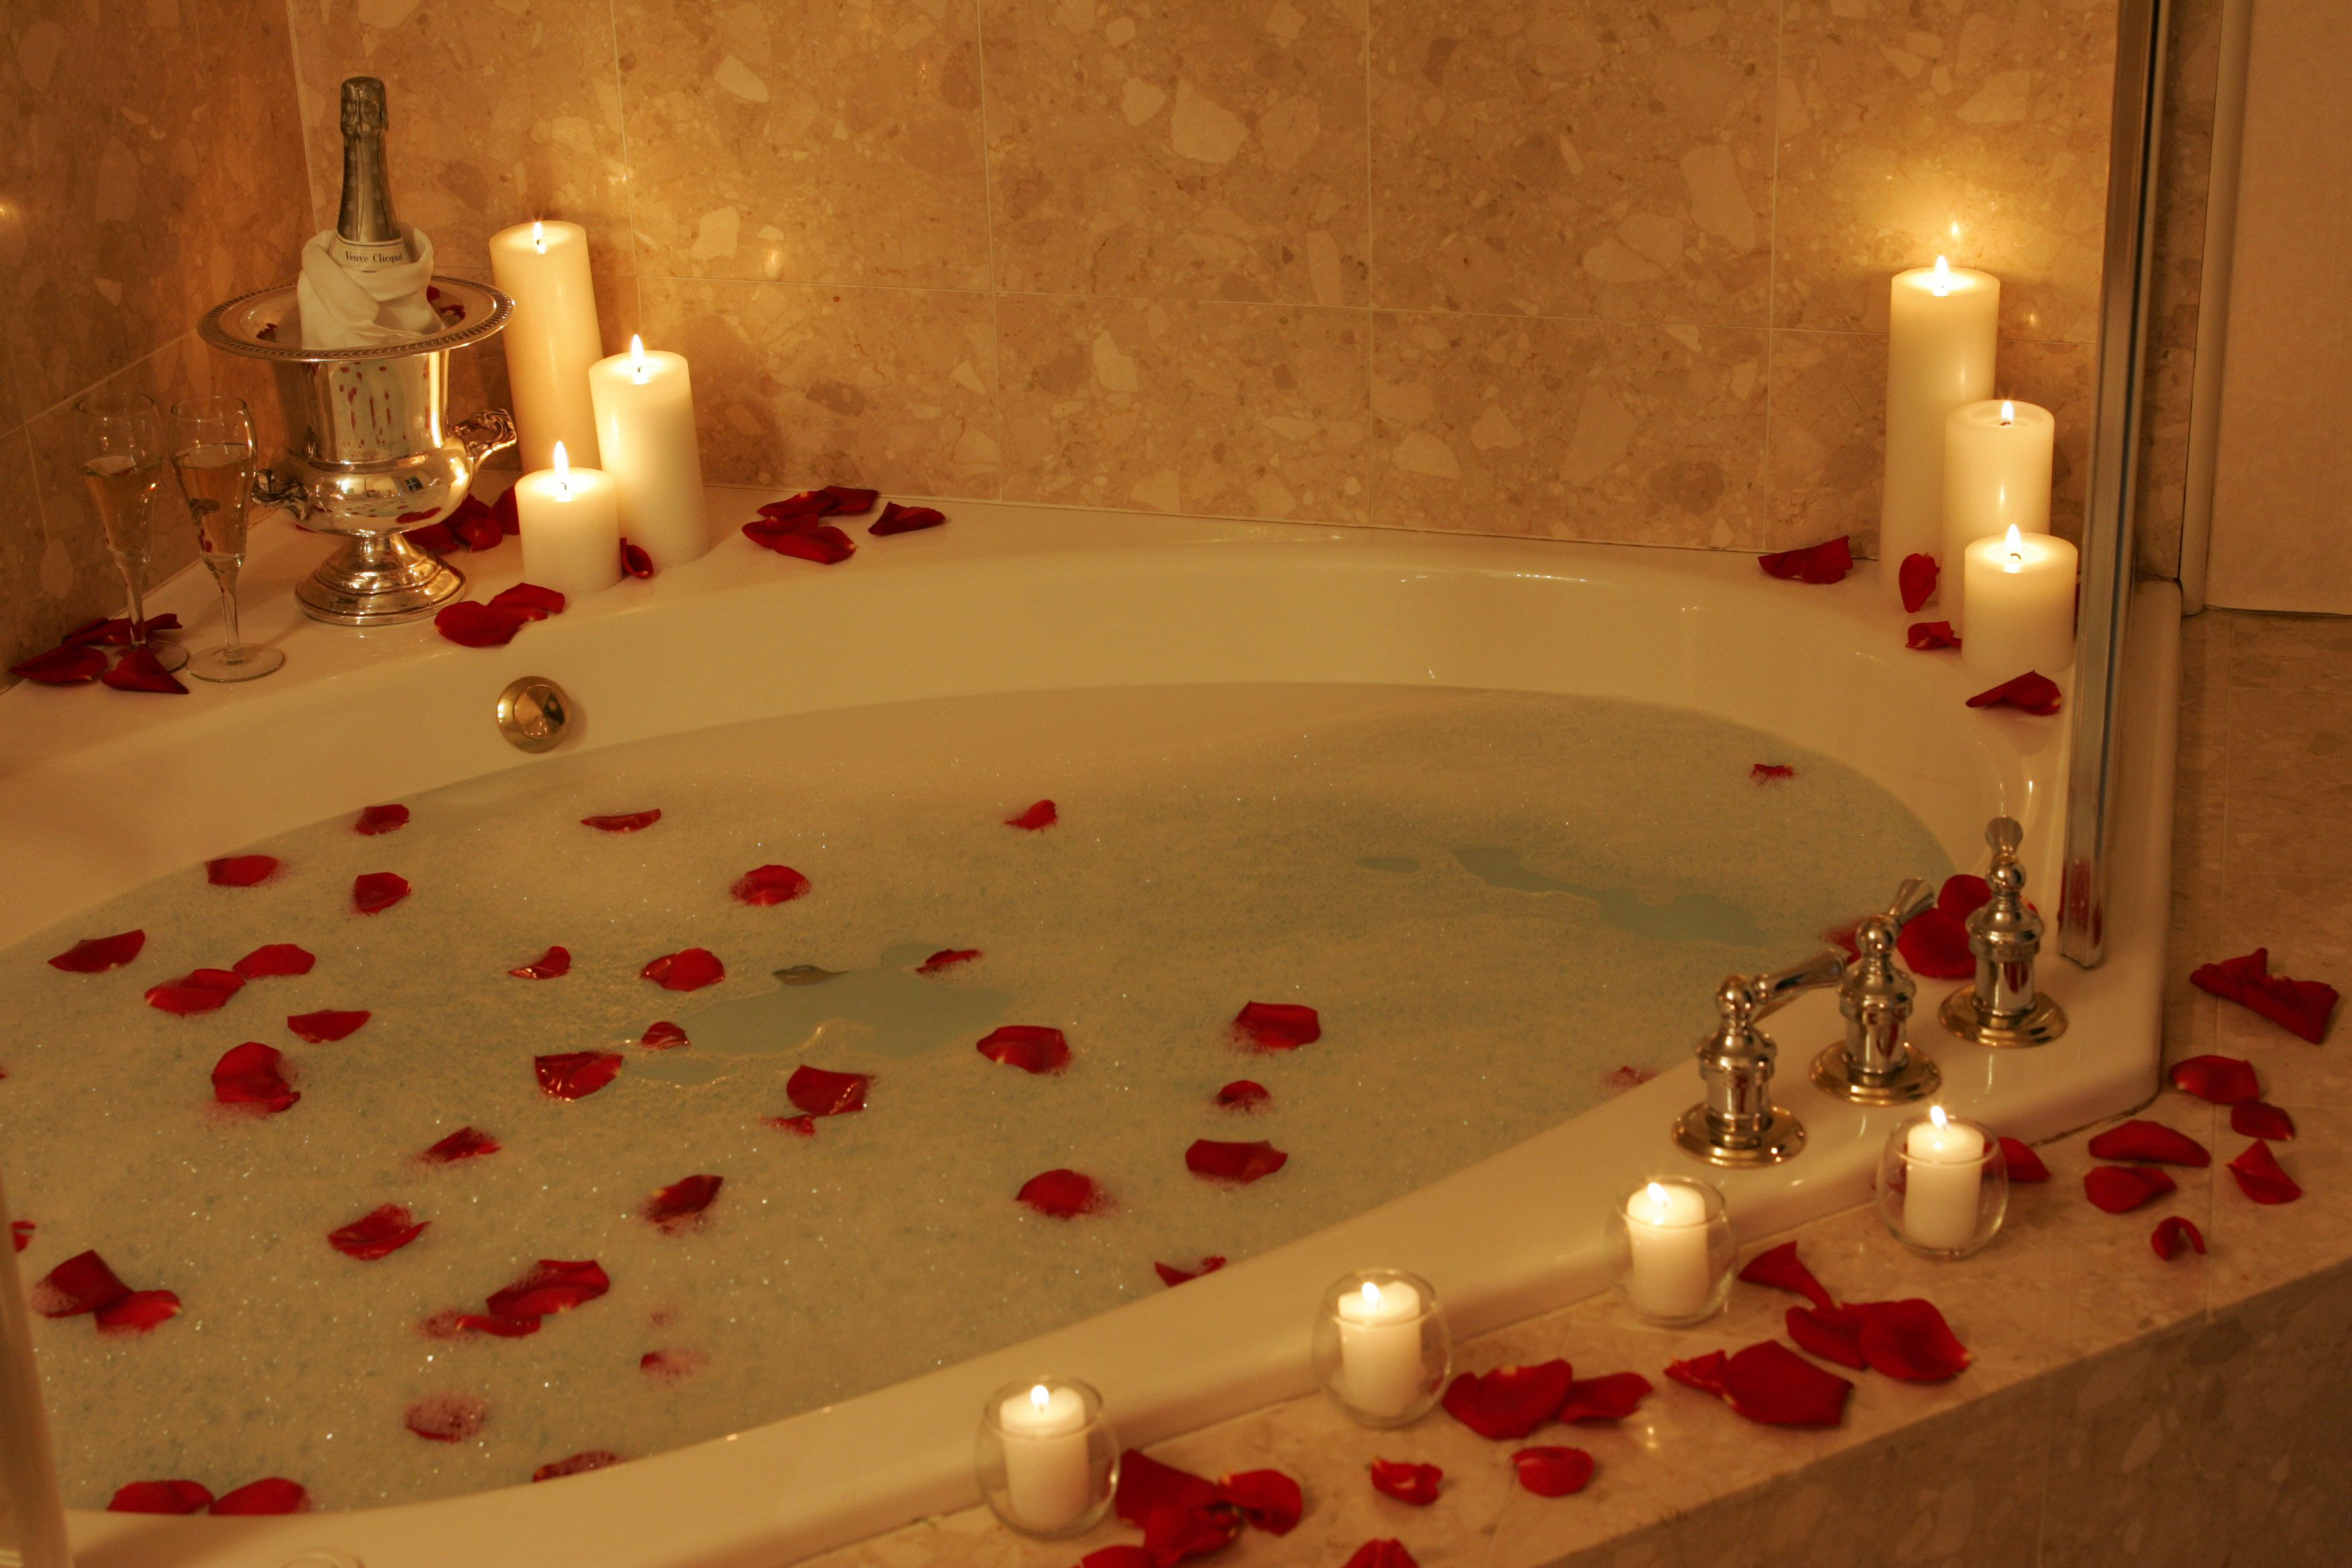 Pin by Jared Cranford on Pamper times | Romantic bathrooms ...